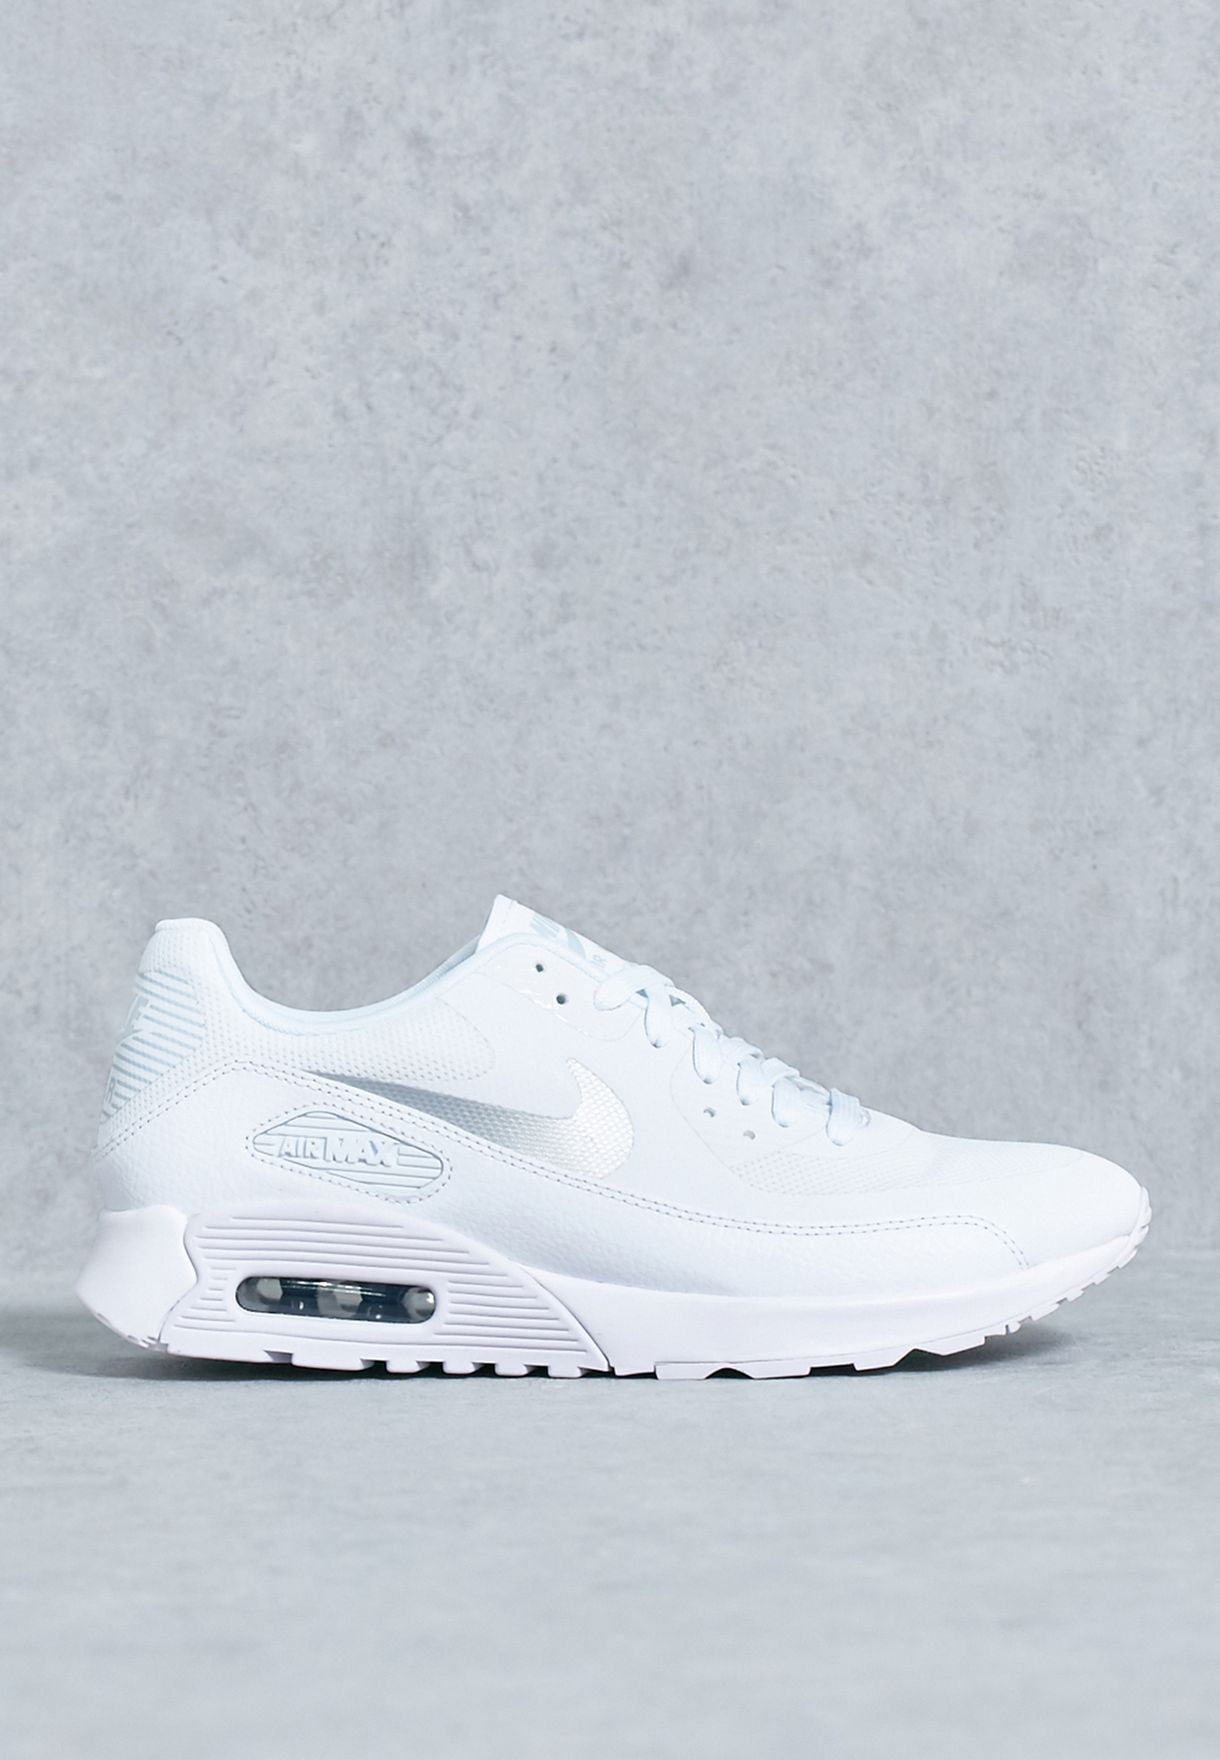 quality design 9a033 1c627 Air Max 90 Ultra 2.0